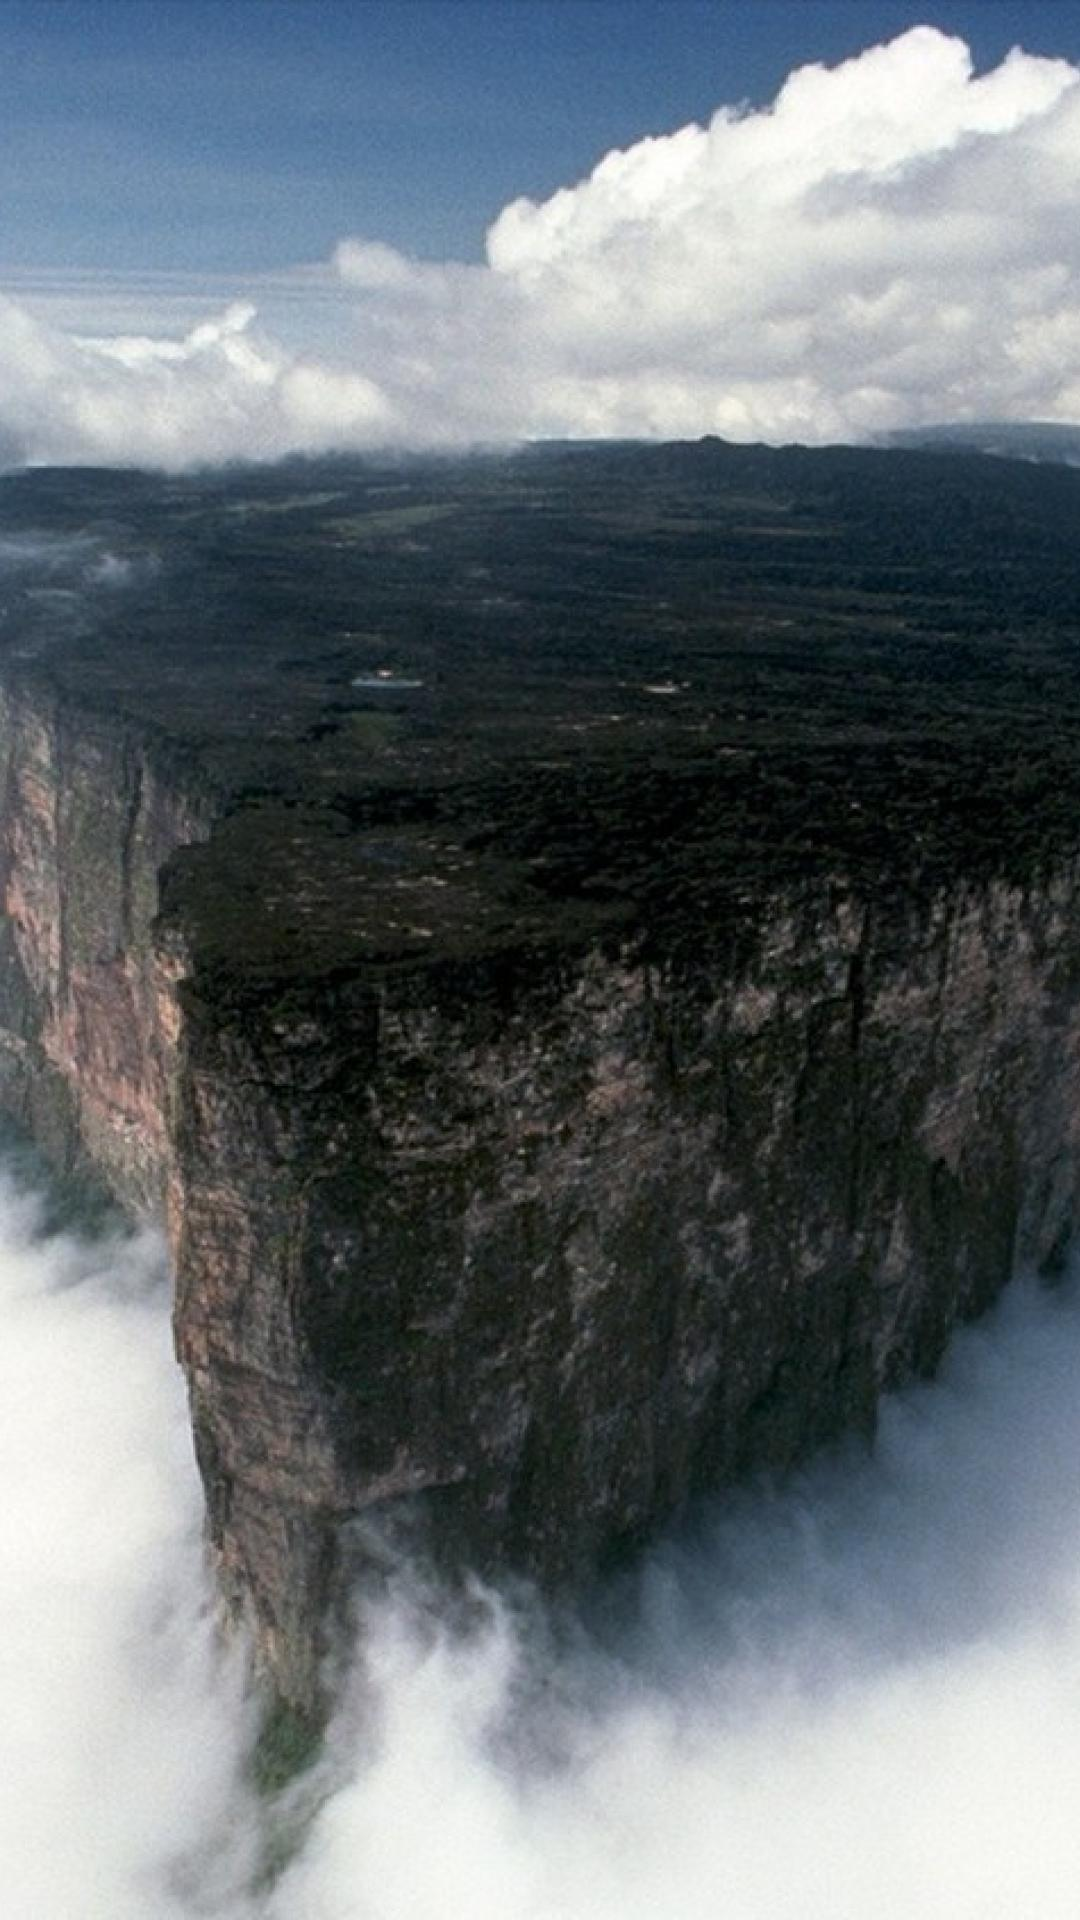 Forests rocks cliffs south america mount roraima wallpapers